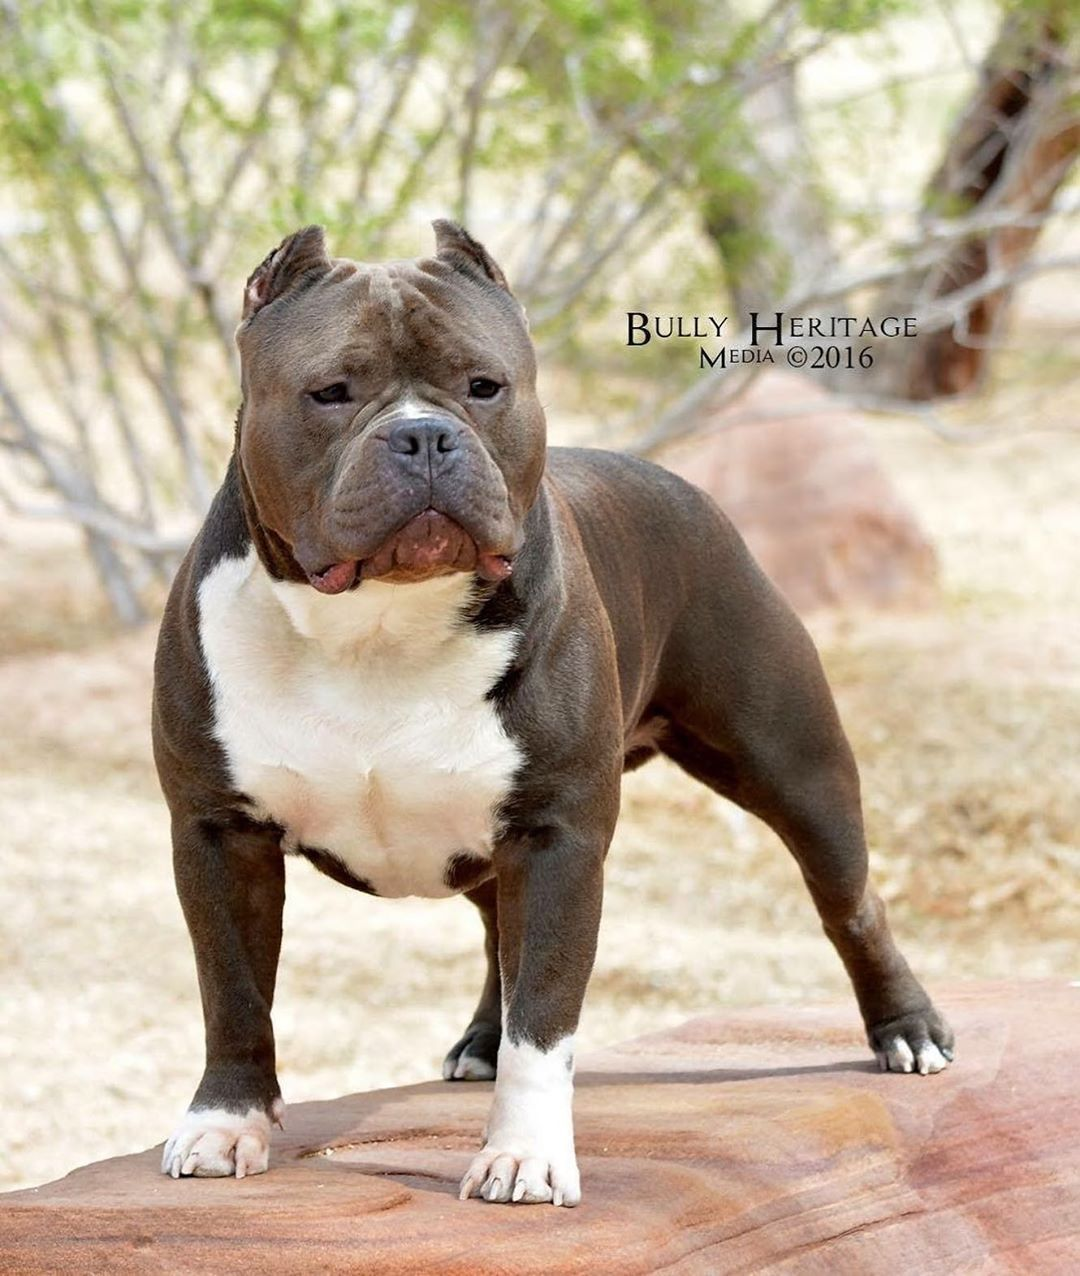 American Bully Image By Robert Saenz On American Bully In 2020